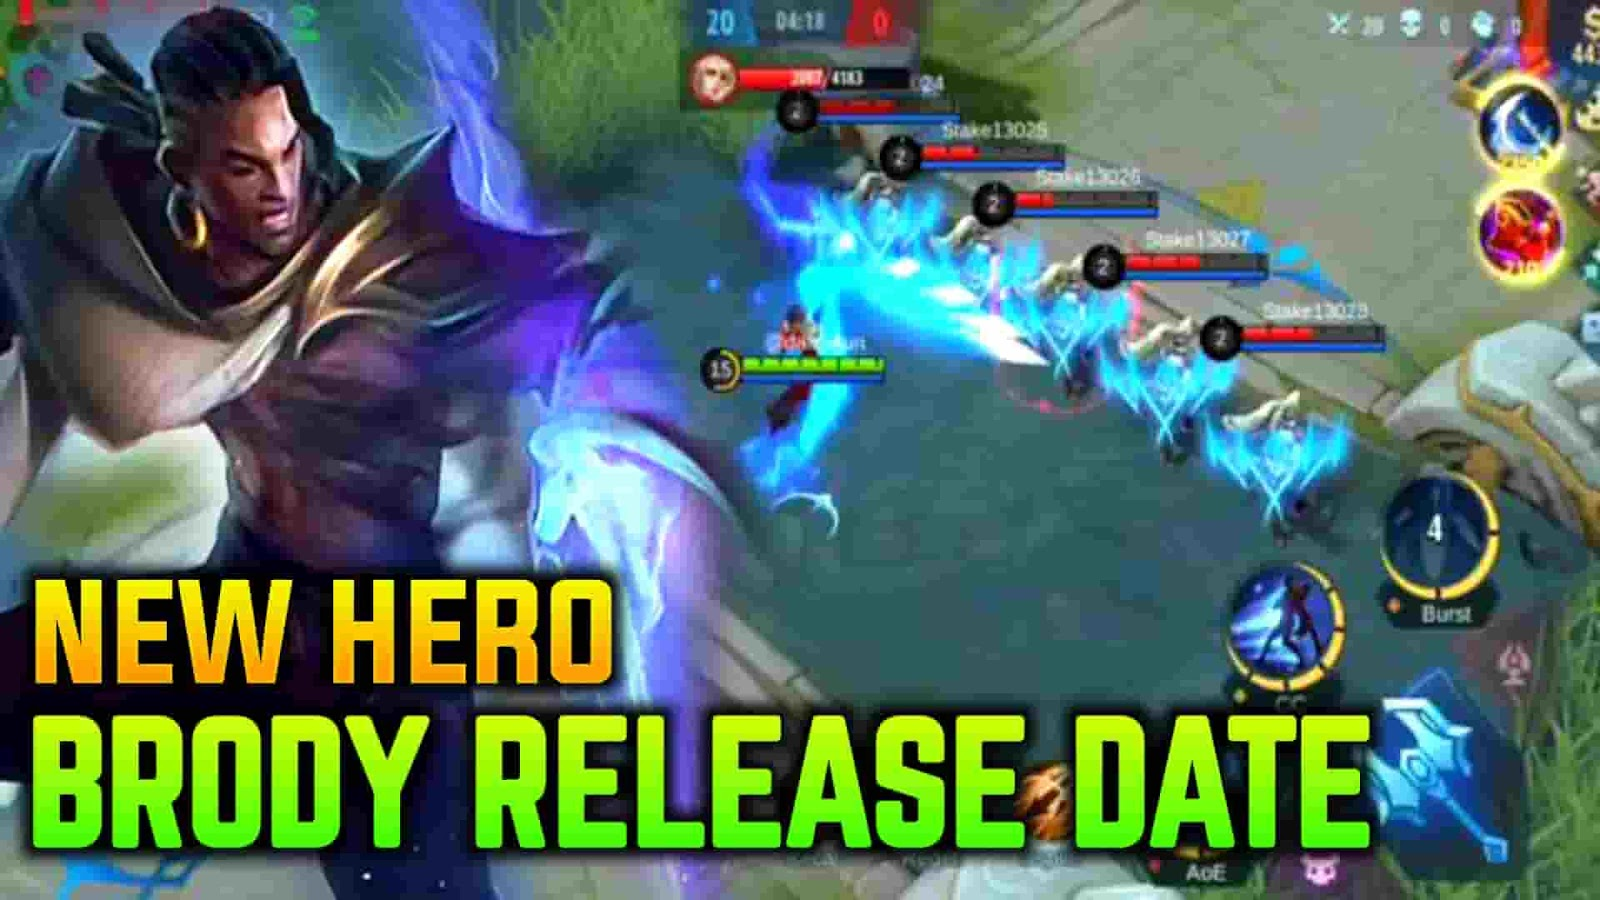 brody mlbb release date,mlbb brody release date,brody release date,brody mlbb,mobile legends brody release date,brody mobile legends release date